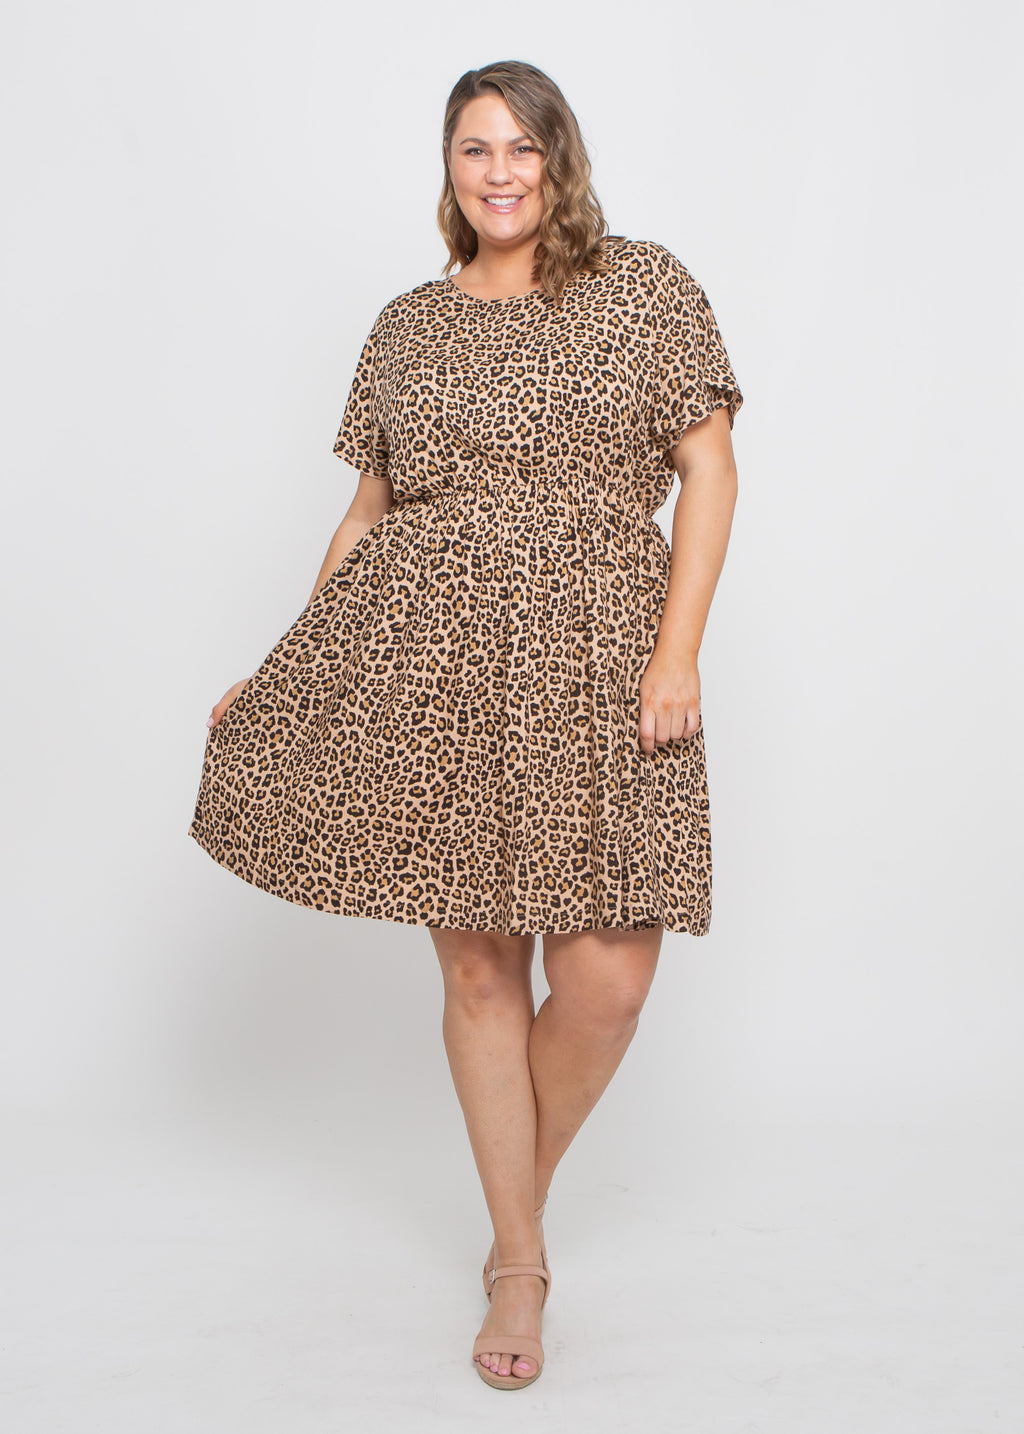 ASPEN DRESS - CAMEL LEOPARD